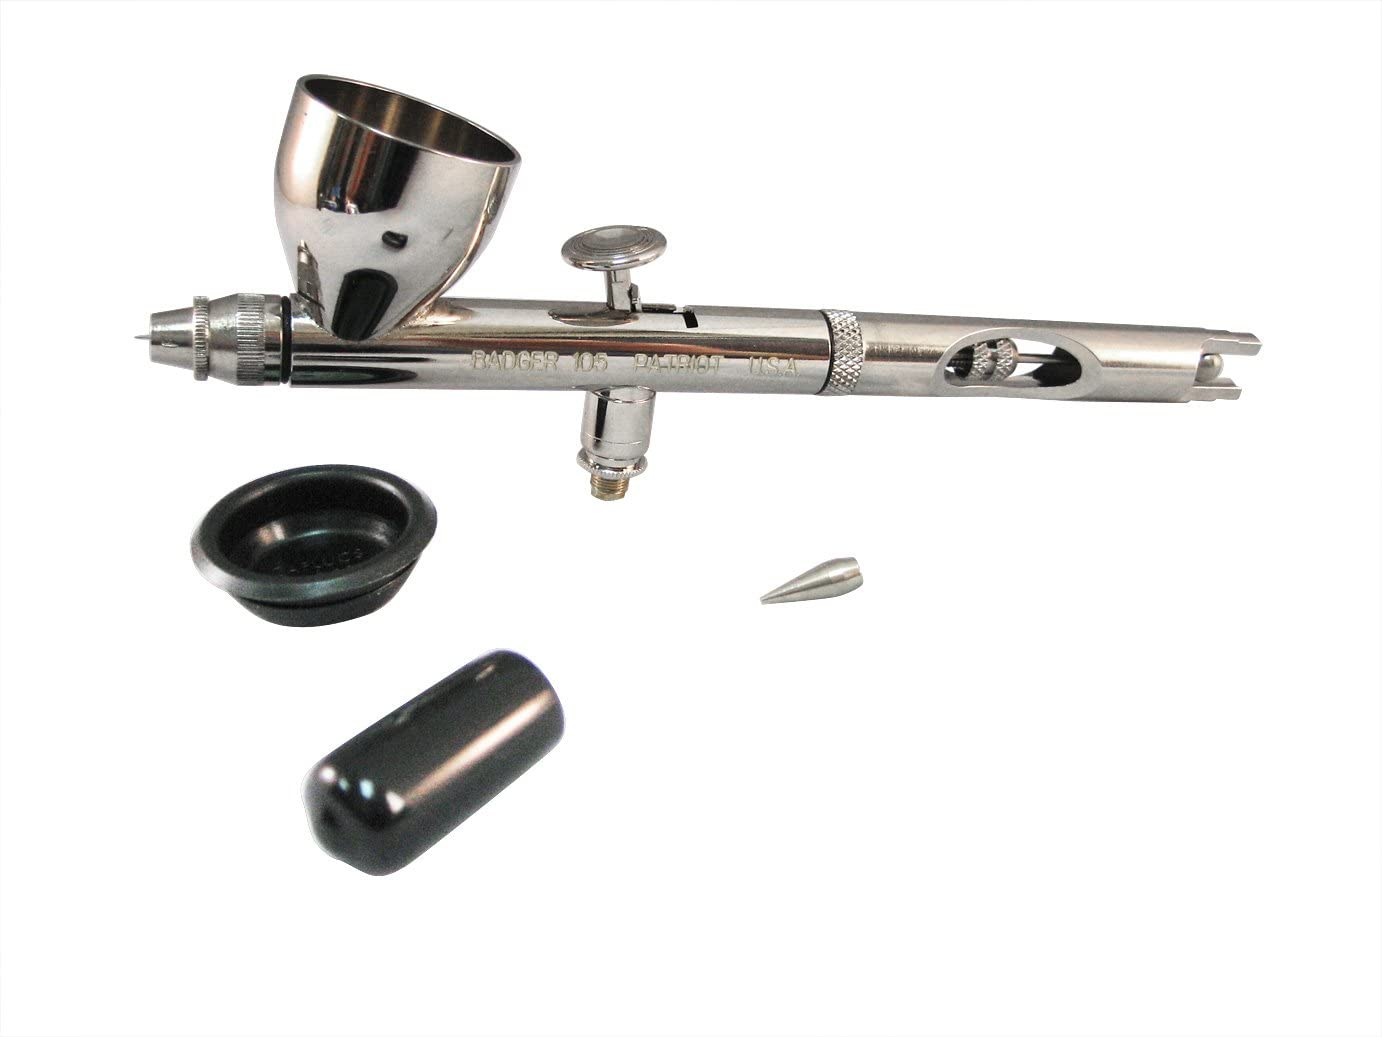 Badger Air-Brush Co. 105 Patriot Fine Gravity Airbrush: Arts, Crafts & Sewing